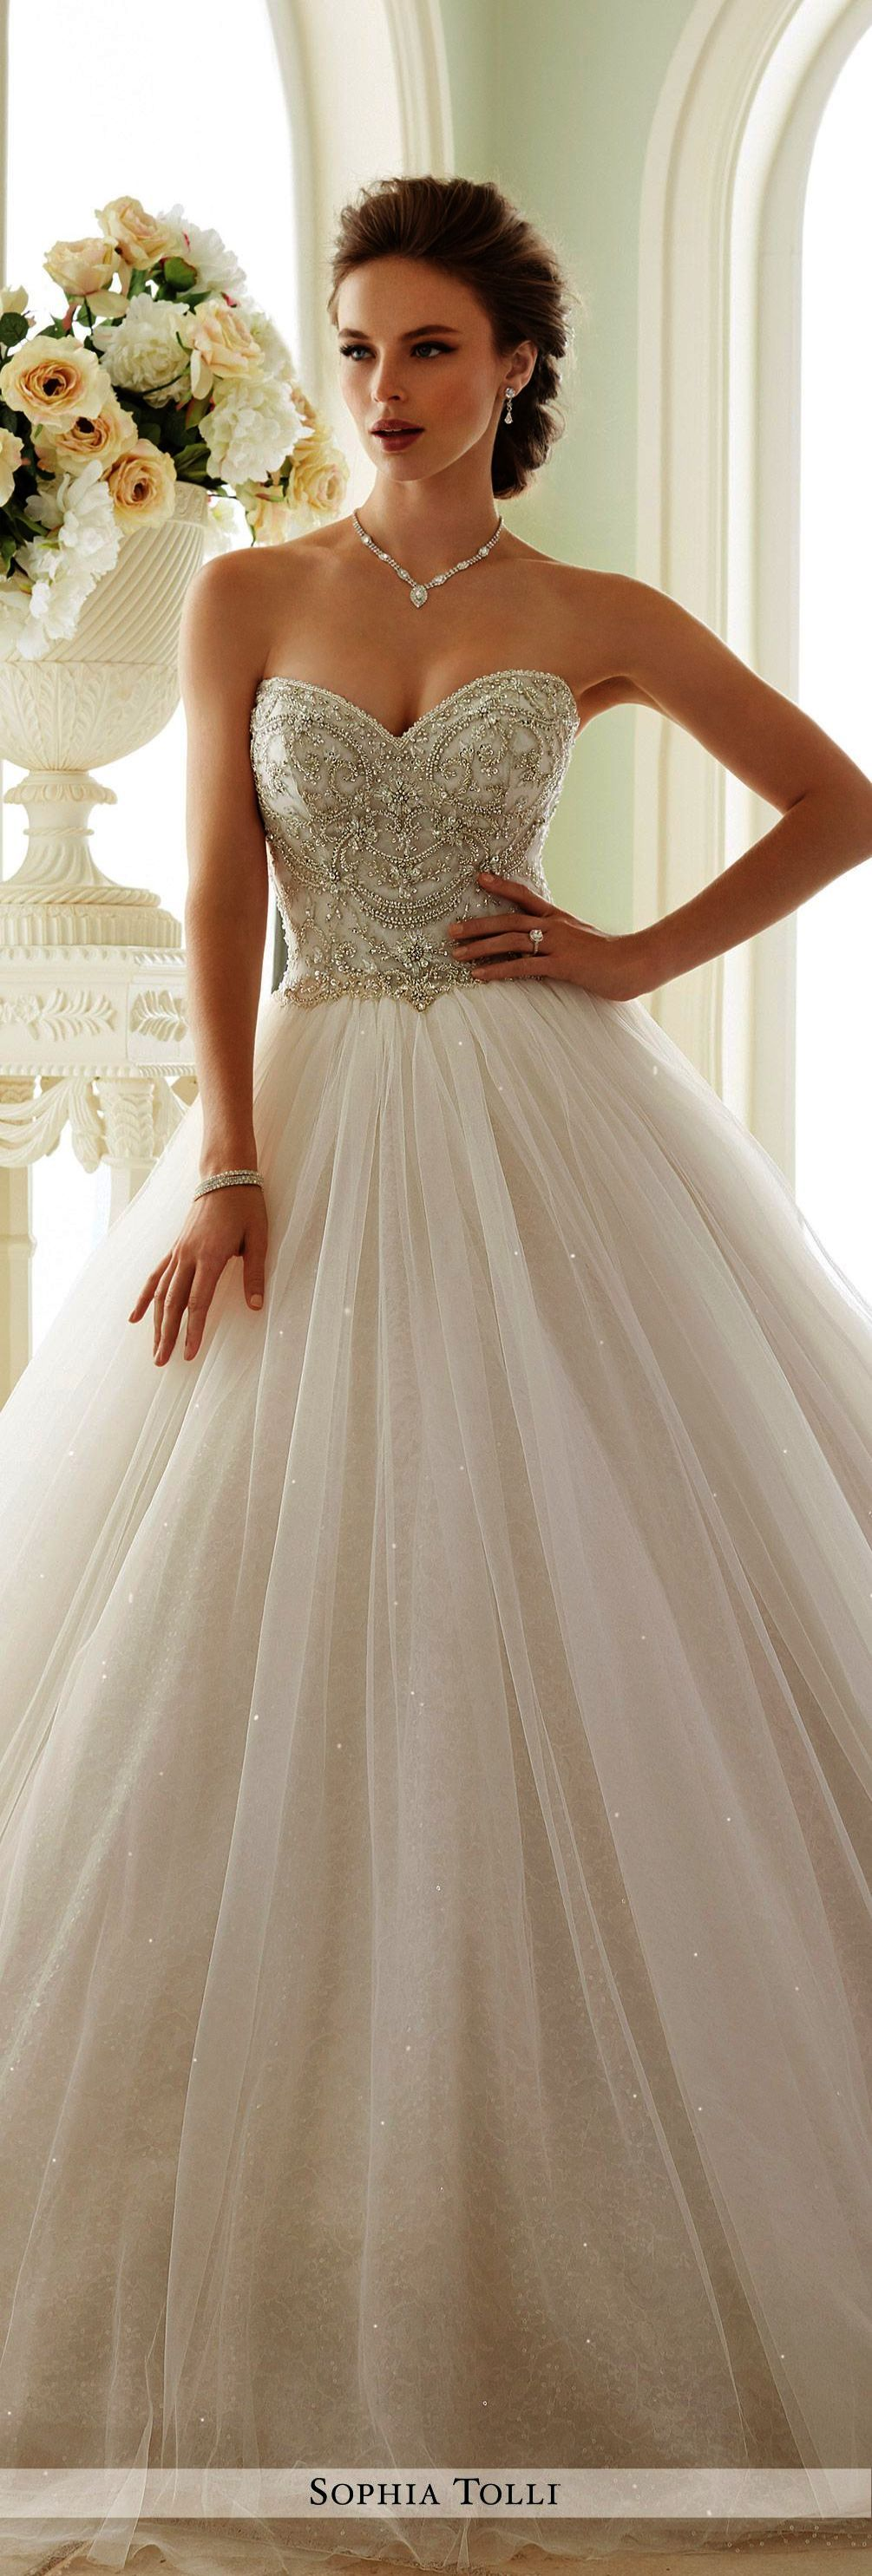 Ball Gown Rental Online Homecoming Dress Resale Near Me Homecoming